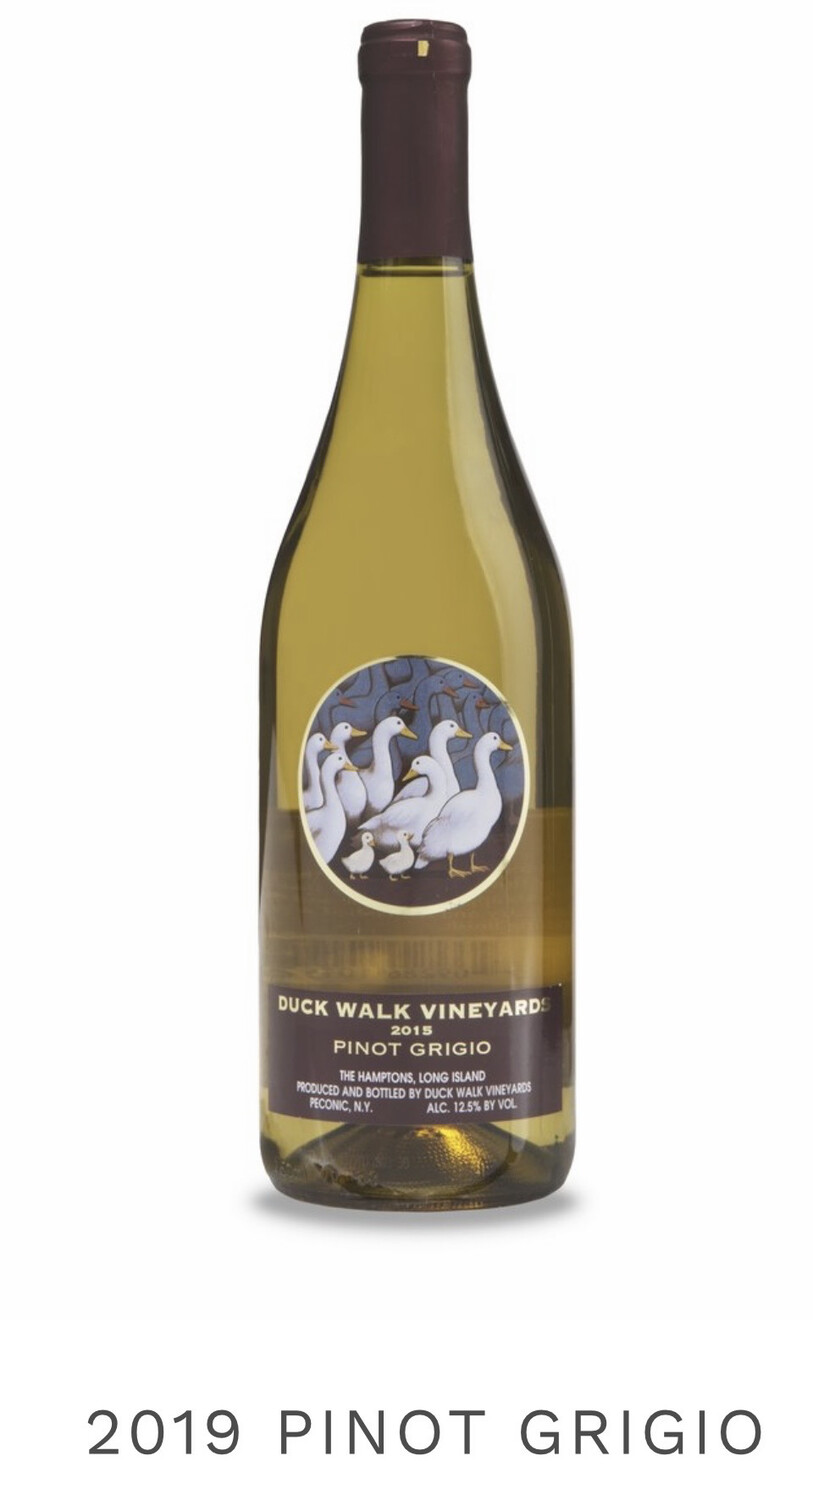 Duckwalk Vineyards Wine Collection (Only Available With Local Delivery Options On Long Island)